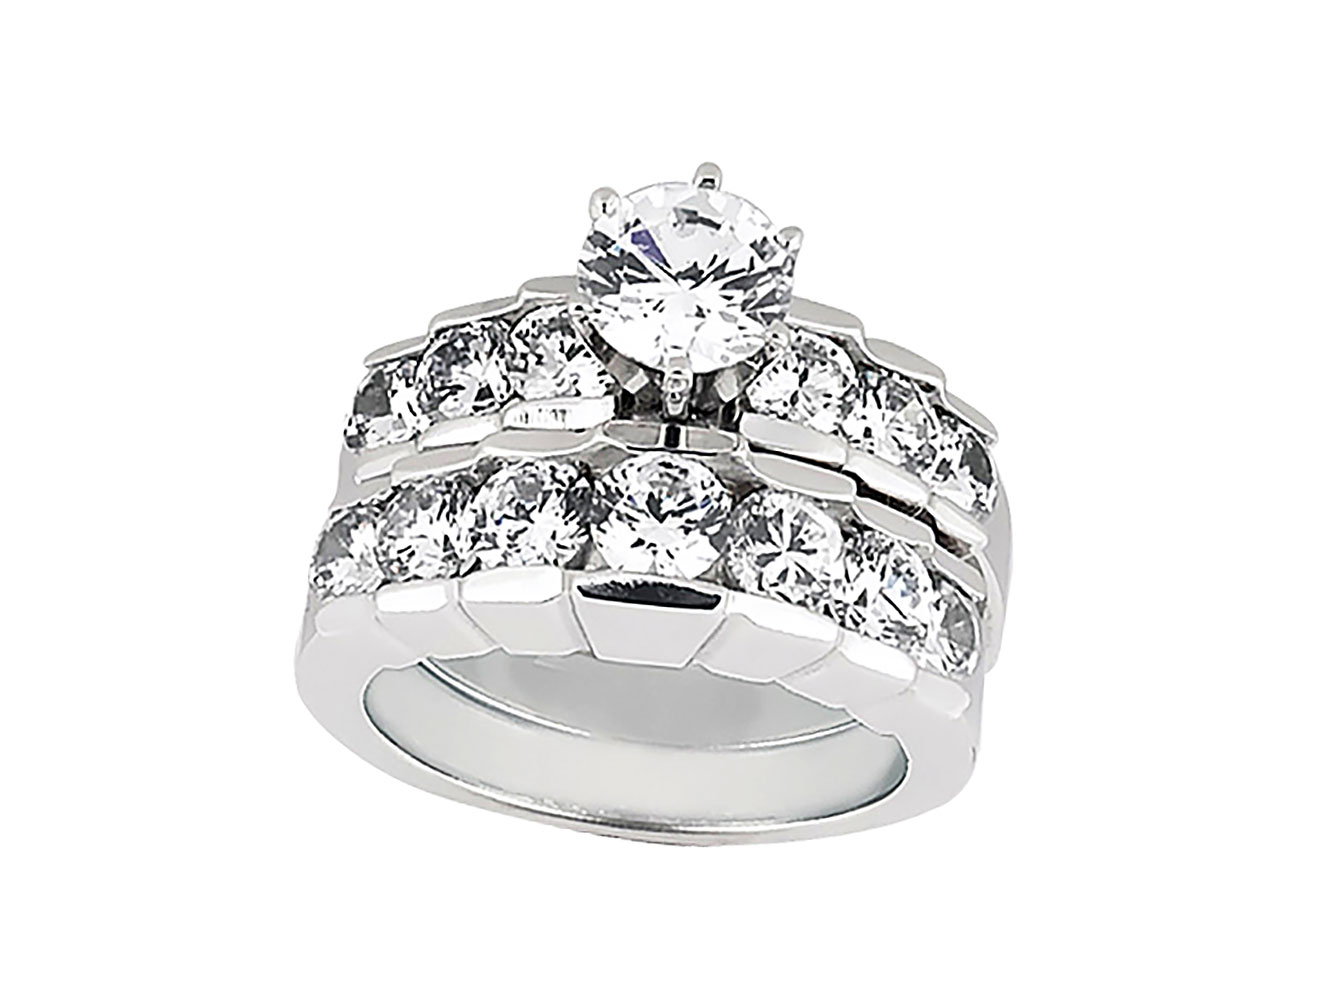 genuine 150ct round diamond engagement ring set 925 sterling silver gh i2 i3 - Sterling Silver Diamond Wedding Rings